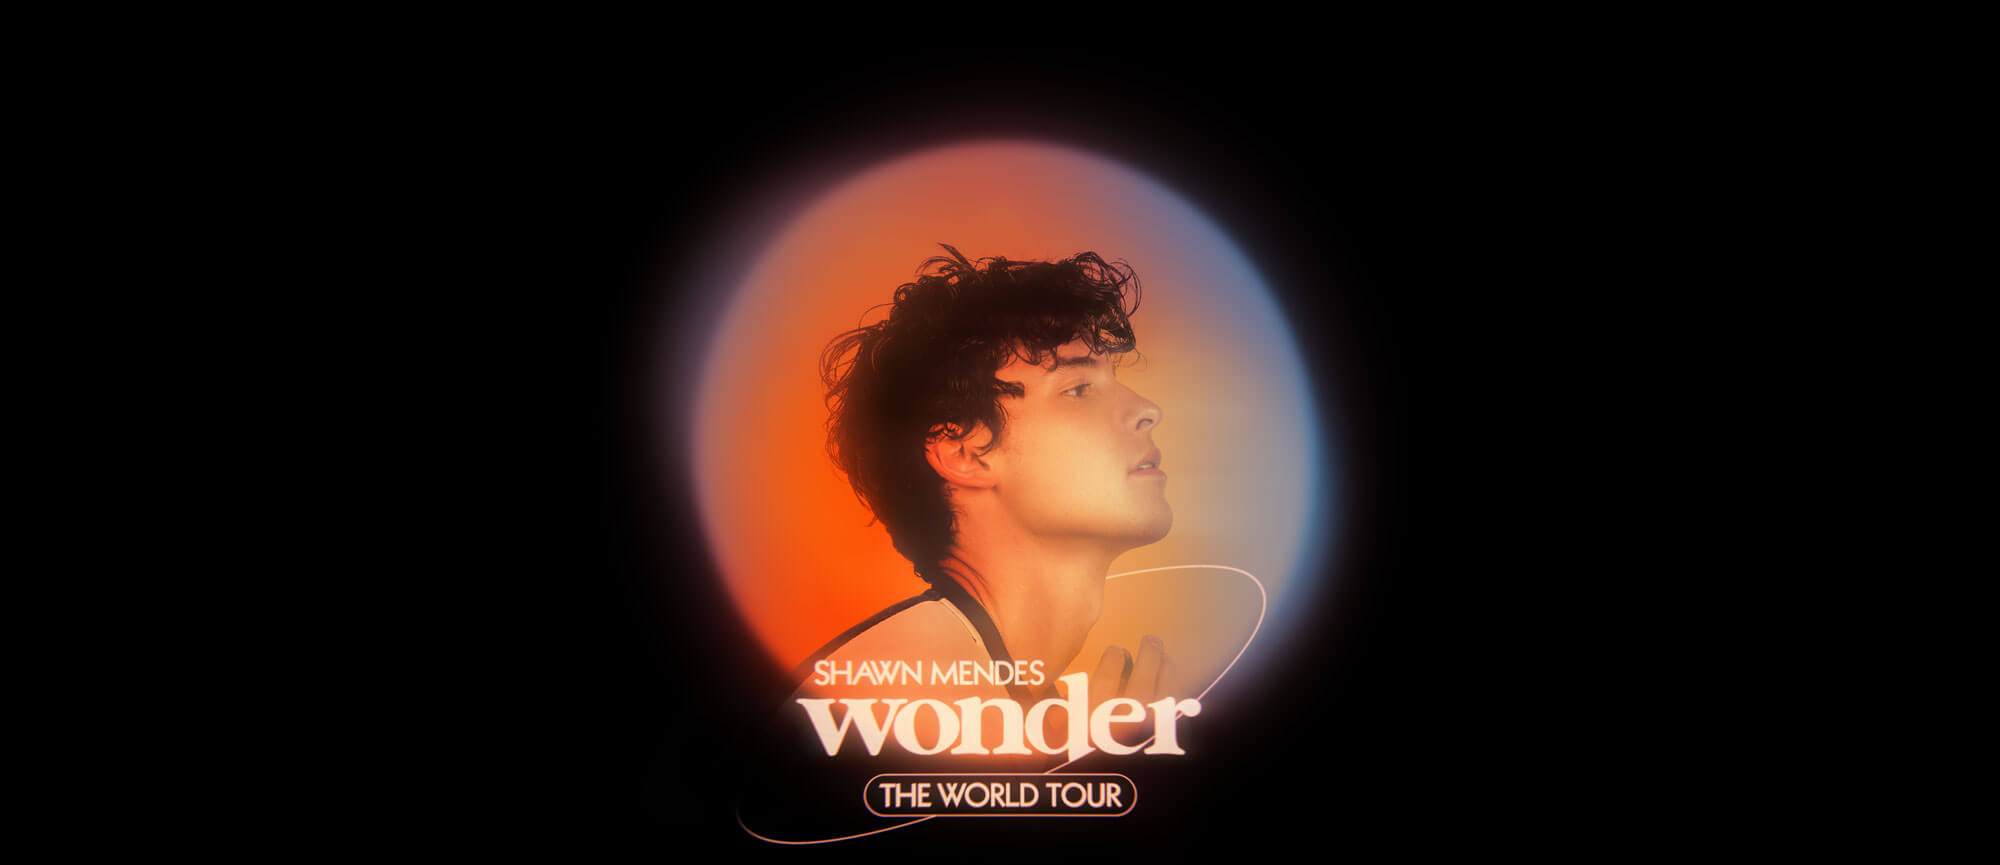 Shawn Mendes World Tour 2022 Dates Venue Where To Buy Tickets And Details